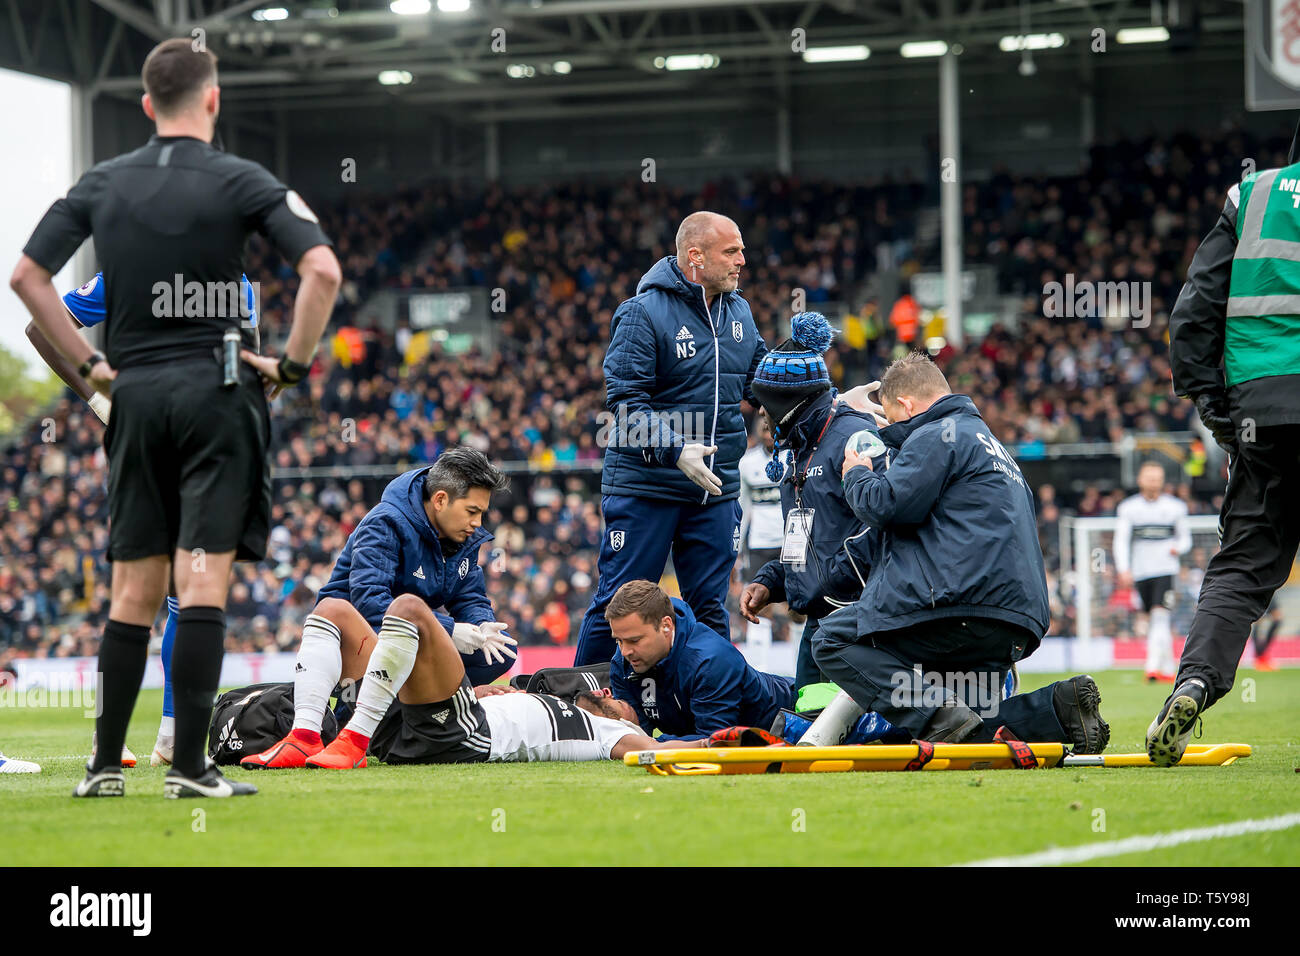 Craven Cottage, London, England, UK. 27th April 2019.  Denis Odoi of Fulham lies on the ground with blood on his face and receives medical attention during the Premier League match between Fulham and Cardiff City at Craven Cottage, London, England on 27 April 2019. Photo by Salvio Calabrese.  Editorial use only, license required for commercial use. No use in betting, games or a single club/league/player publications. - Stock Image